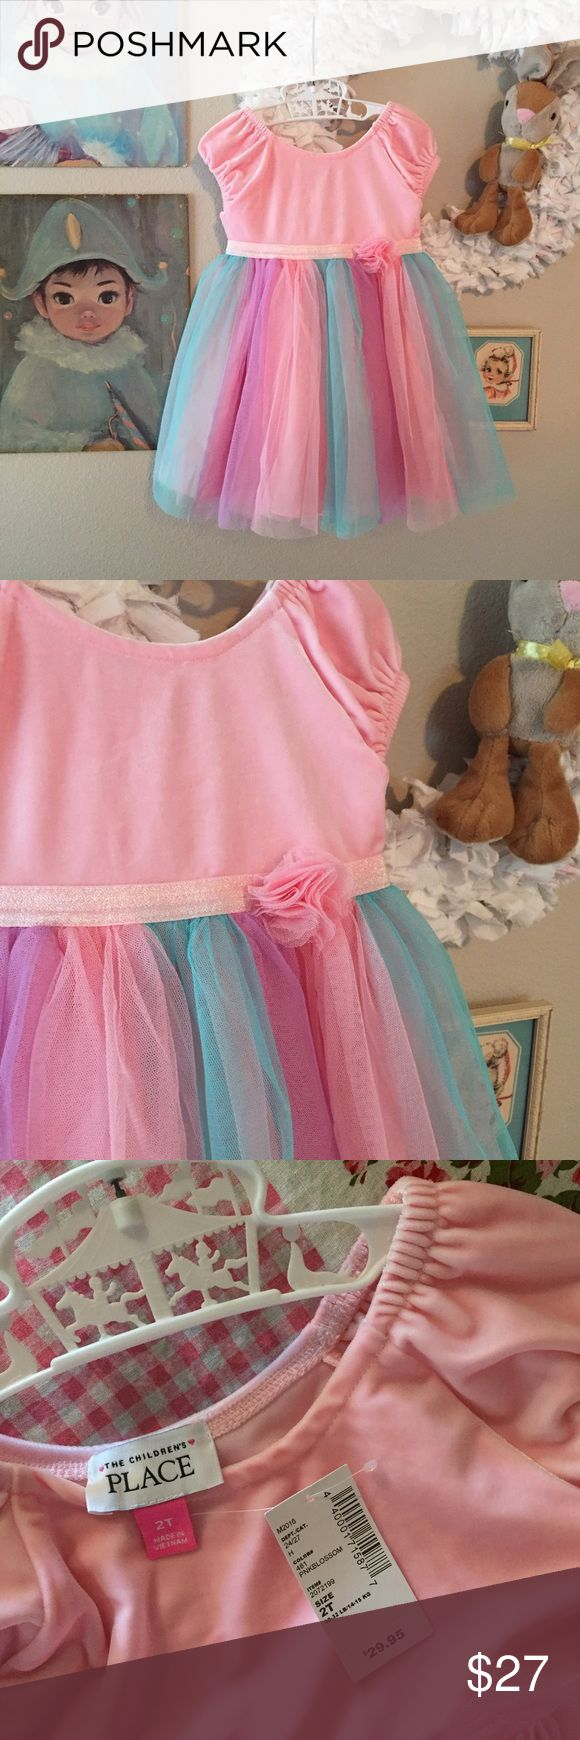 NWT TUTU spring dress Sadly won't fit my daughter this year for Easter 😔. Darling soft velvet top with cap sleeves, glitter waistband, Pom Pom tulle flower, and cotton candy full tulle tutu style skirt - lined slip. A pastel dream! Would even make a great birthday party dress for a unicorn or princess theme. Very sweet. The Children's Place Dresses